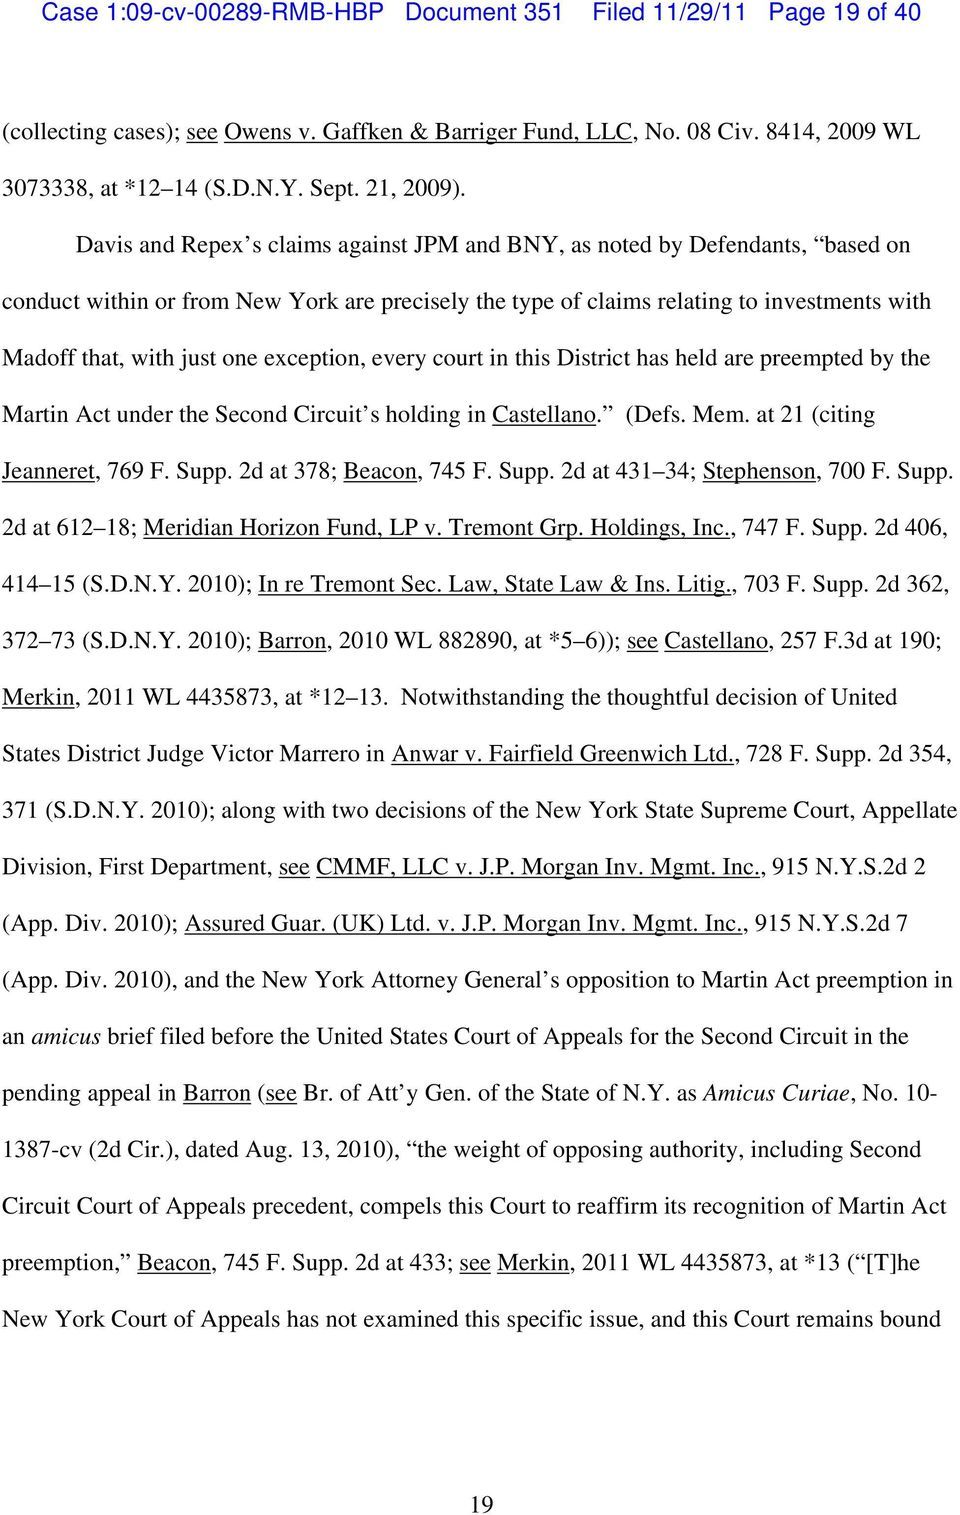 Case 109 Cv Rmb Hbp Document 351 Filed 11 29 Page 1 Of 40 Pdf 2nd Circuit Court Appeals Davis And Repex S Claims Against Jpm Bny As Noted By Defendants Based